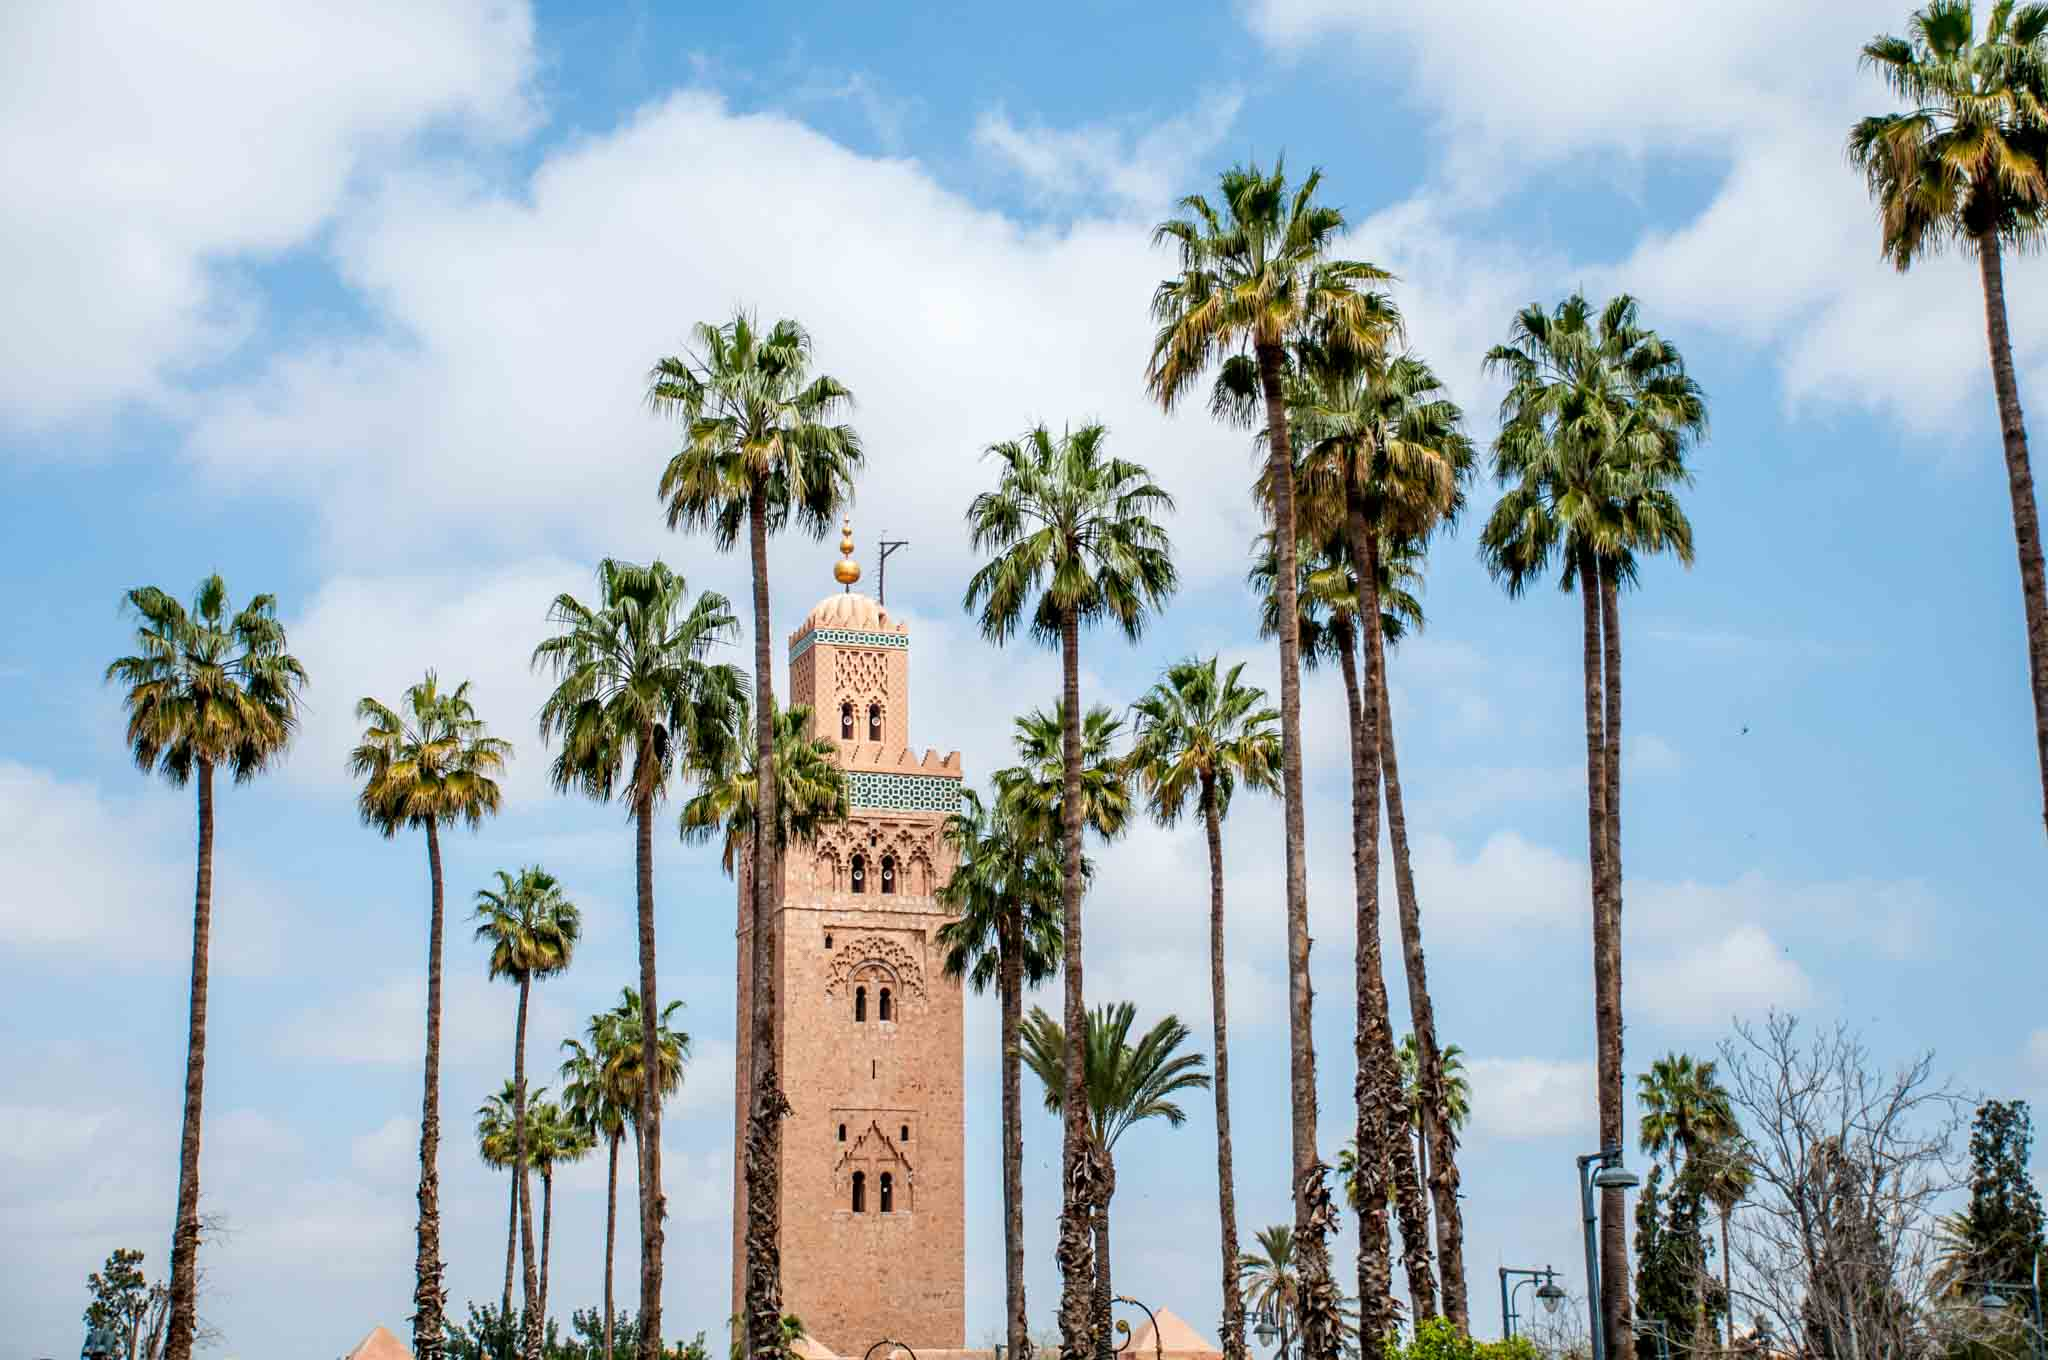 Visiting sites like the Koutubia in Marrakech are a fun part of Morocco travel